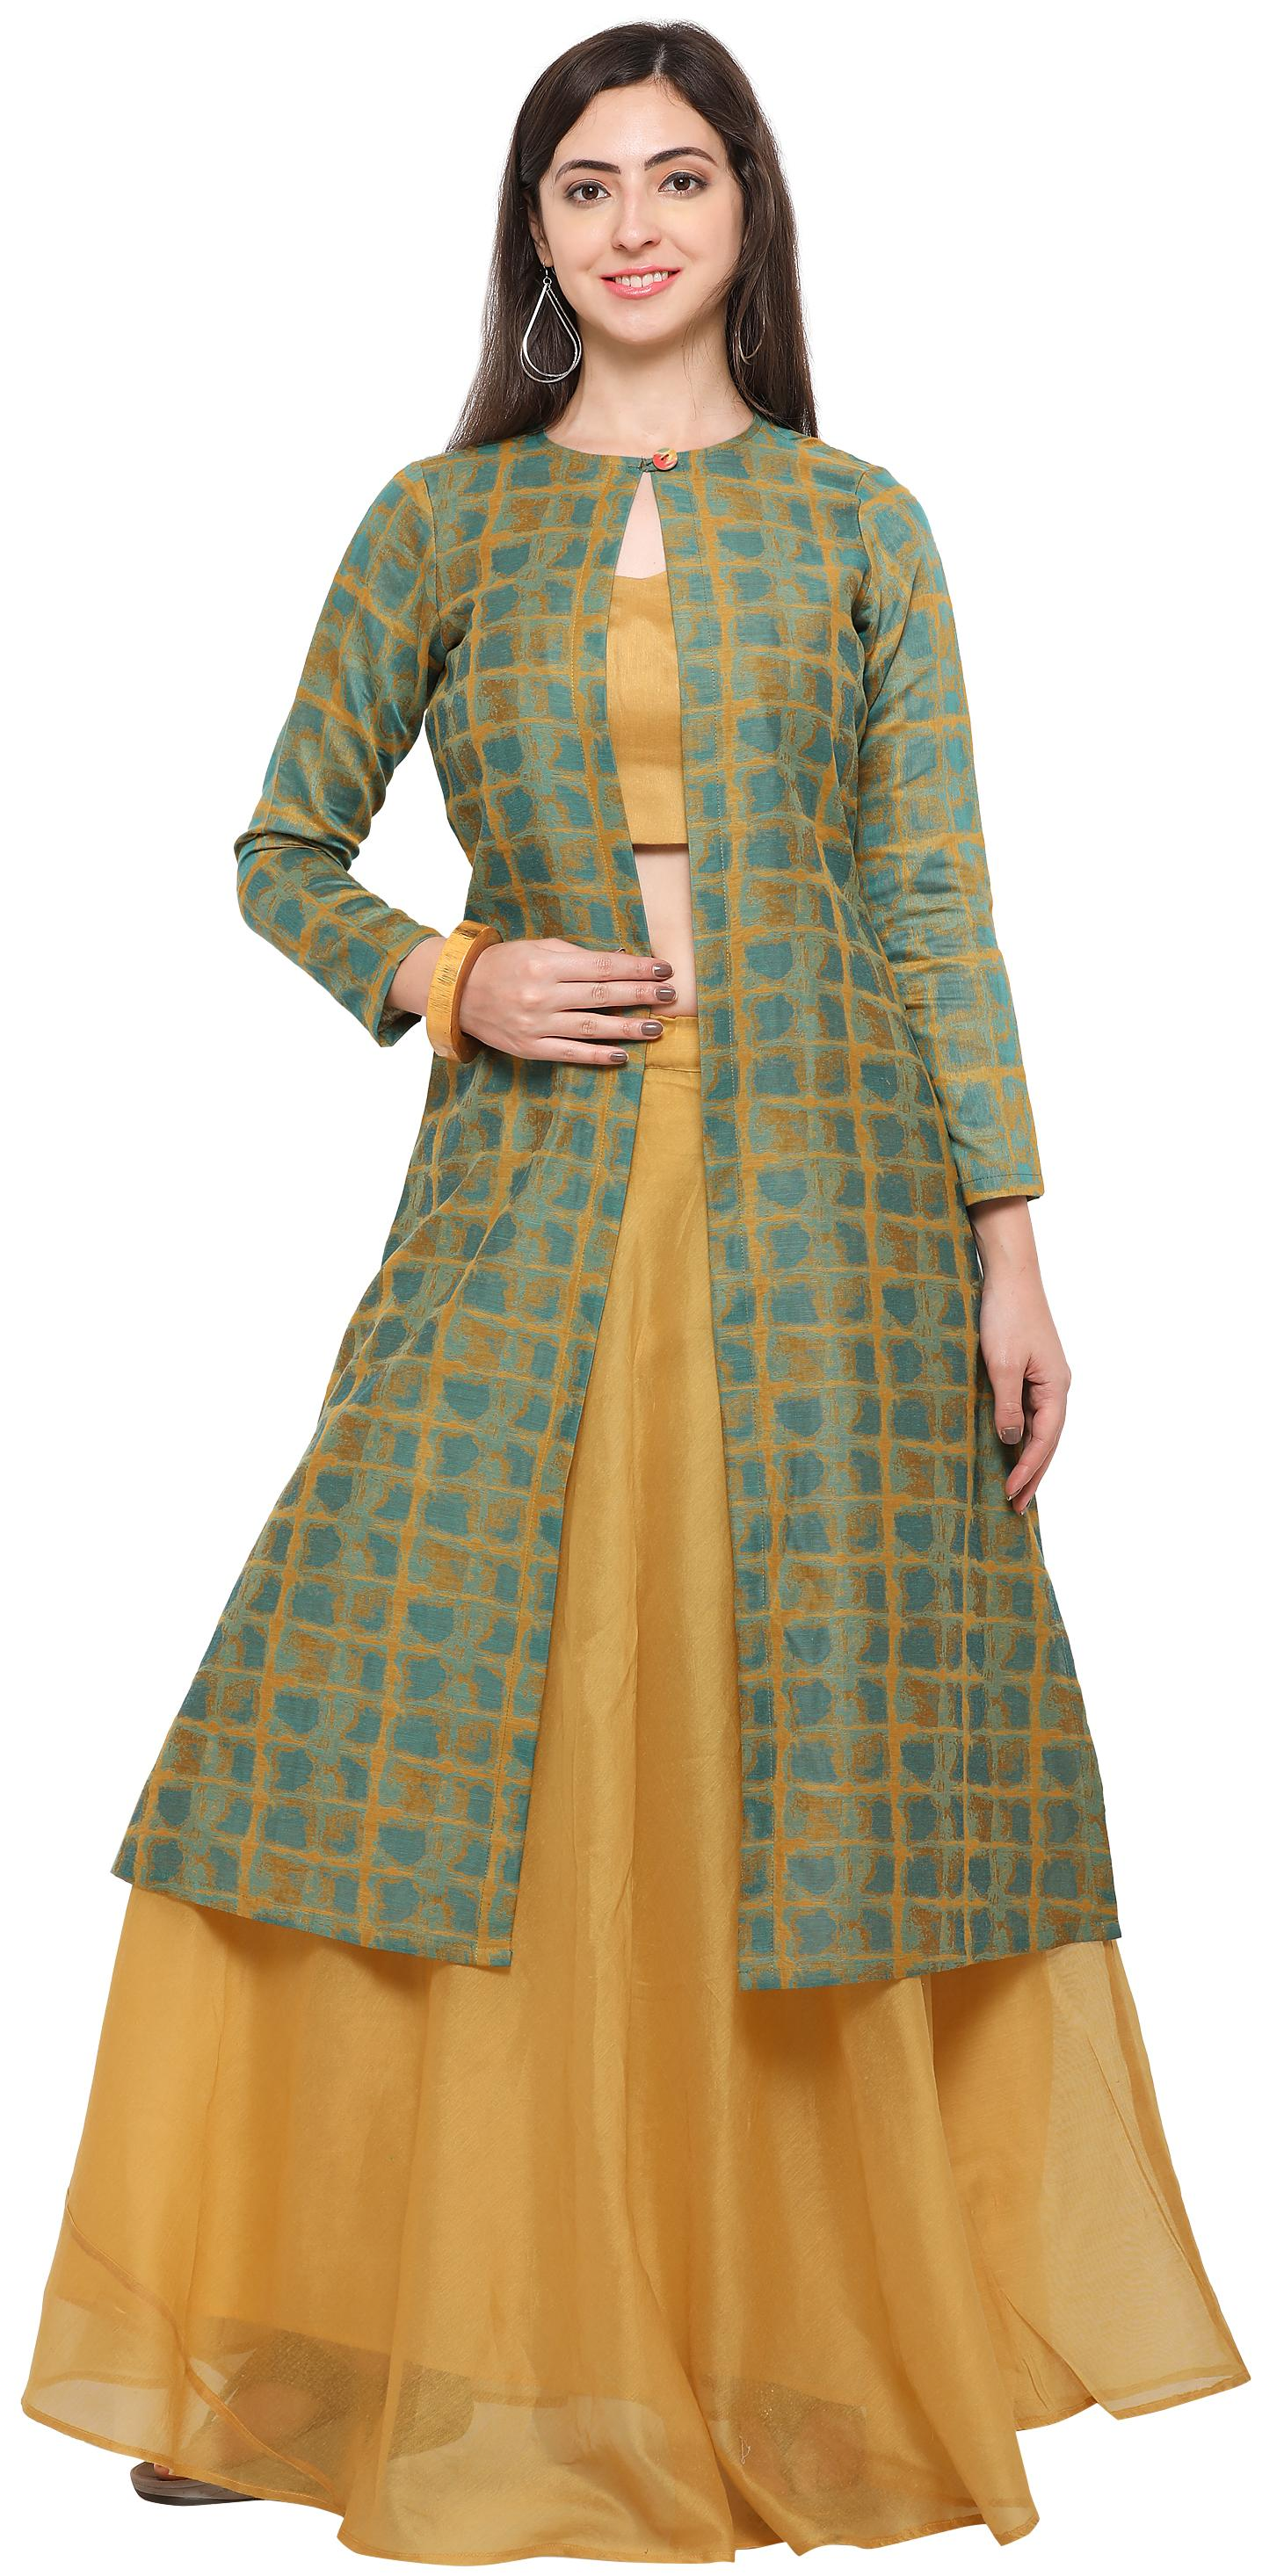 cdf24514465 https   assetscdn1.paytm.com images catalog product . Inddus Mustard Yellow  ...